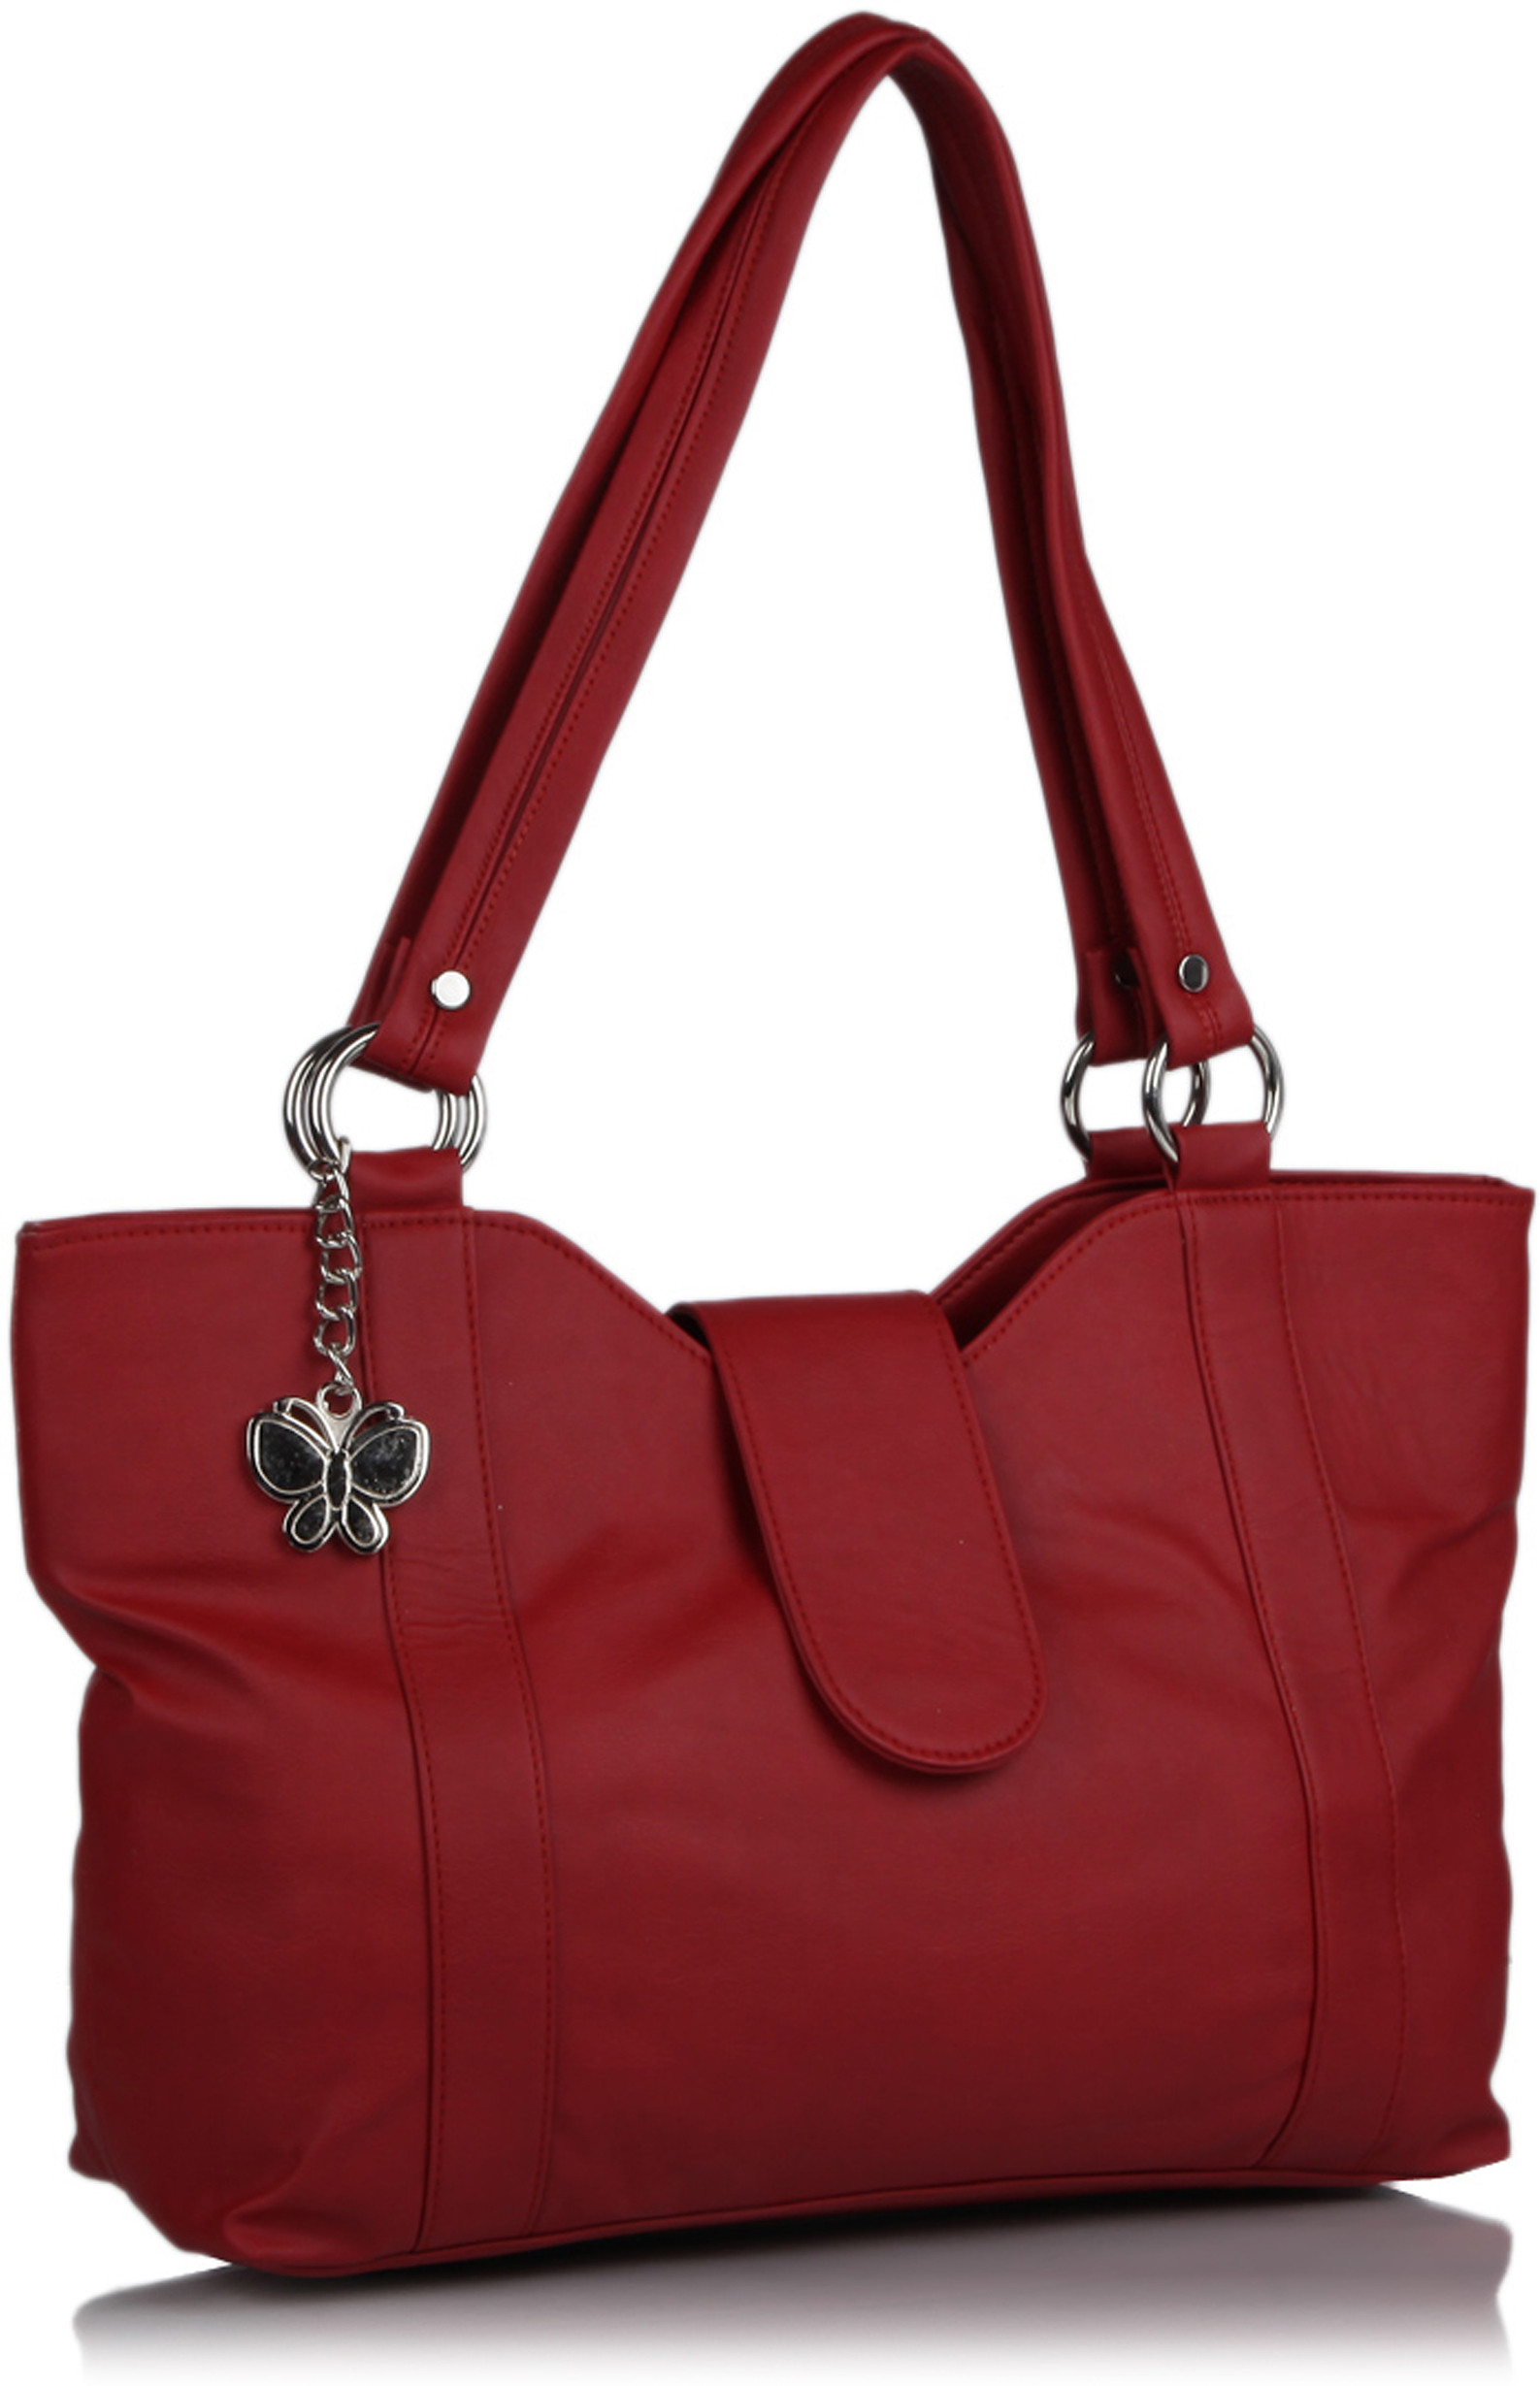 Image Result For Trendy Diaper Bags